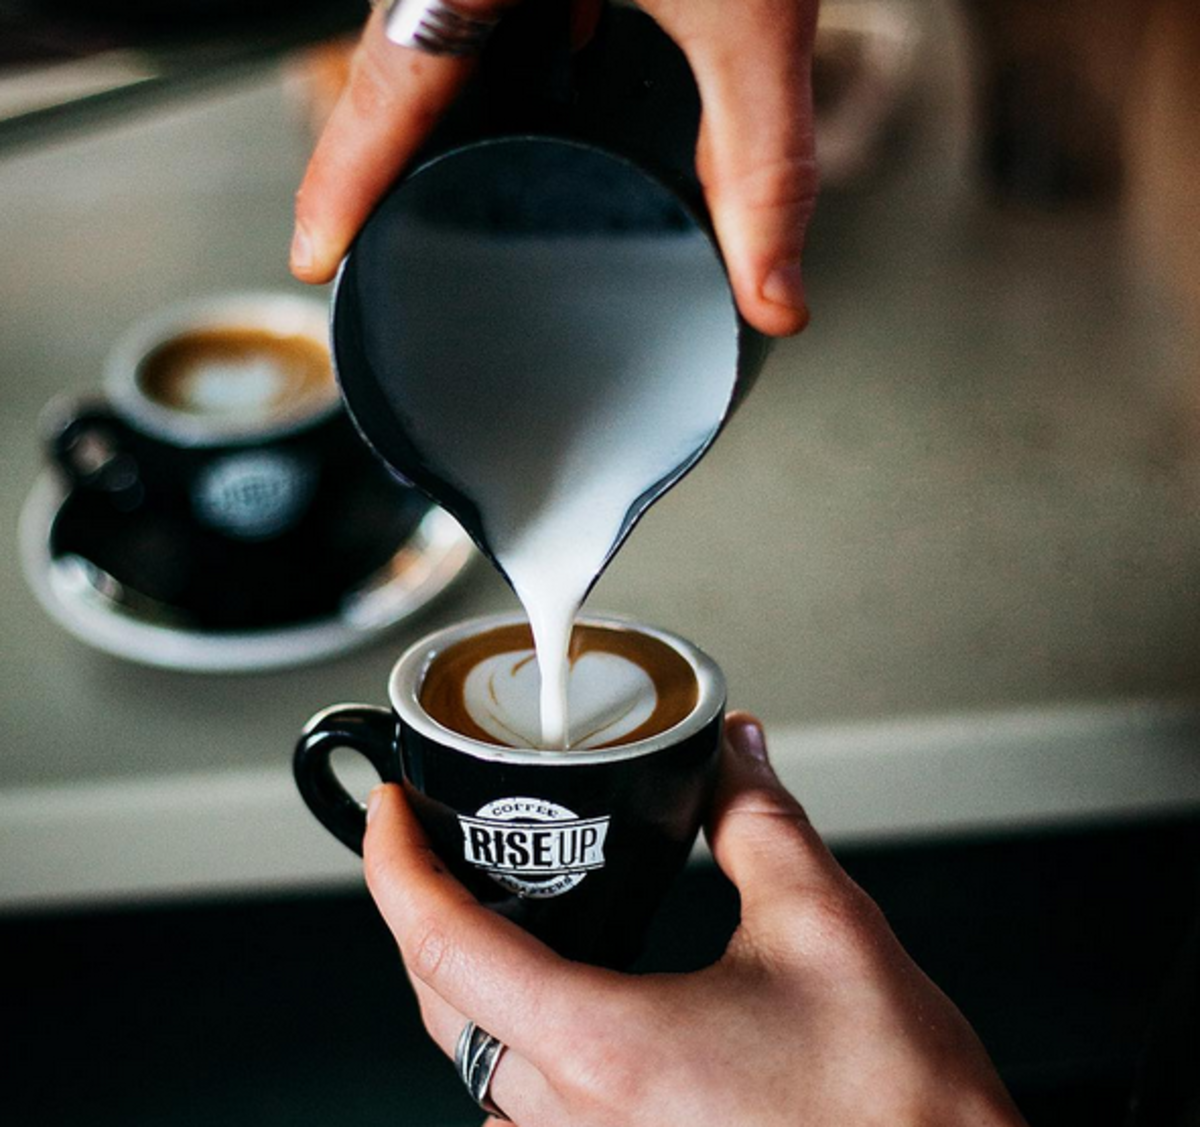 Rise Up coffee carries conscious coffee.